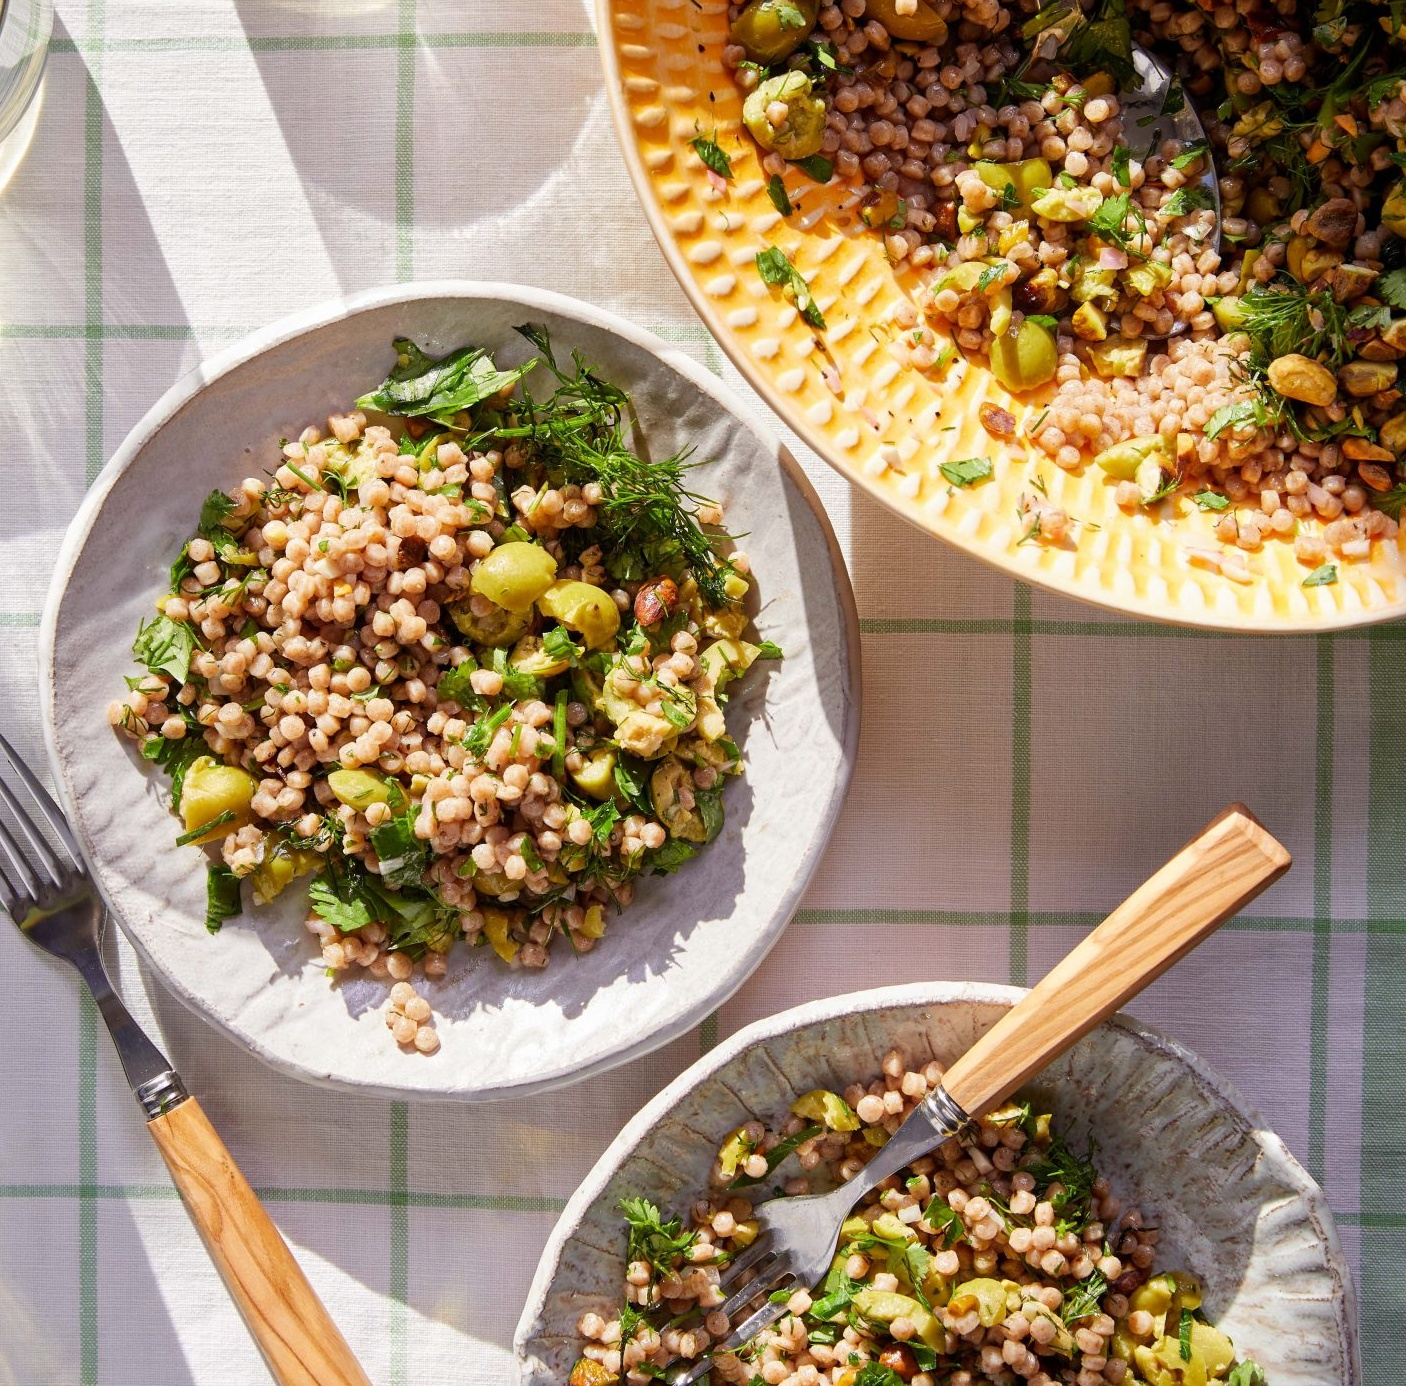 Israeli Couscous Salad with Herbs, Green Olives, and Pistachios